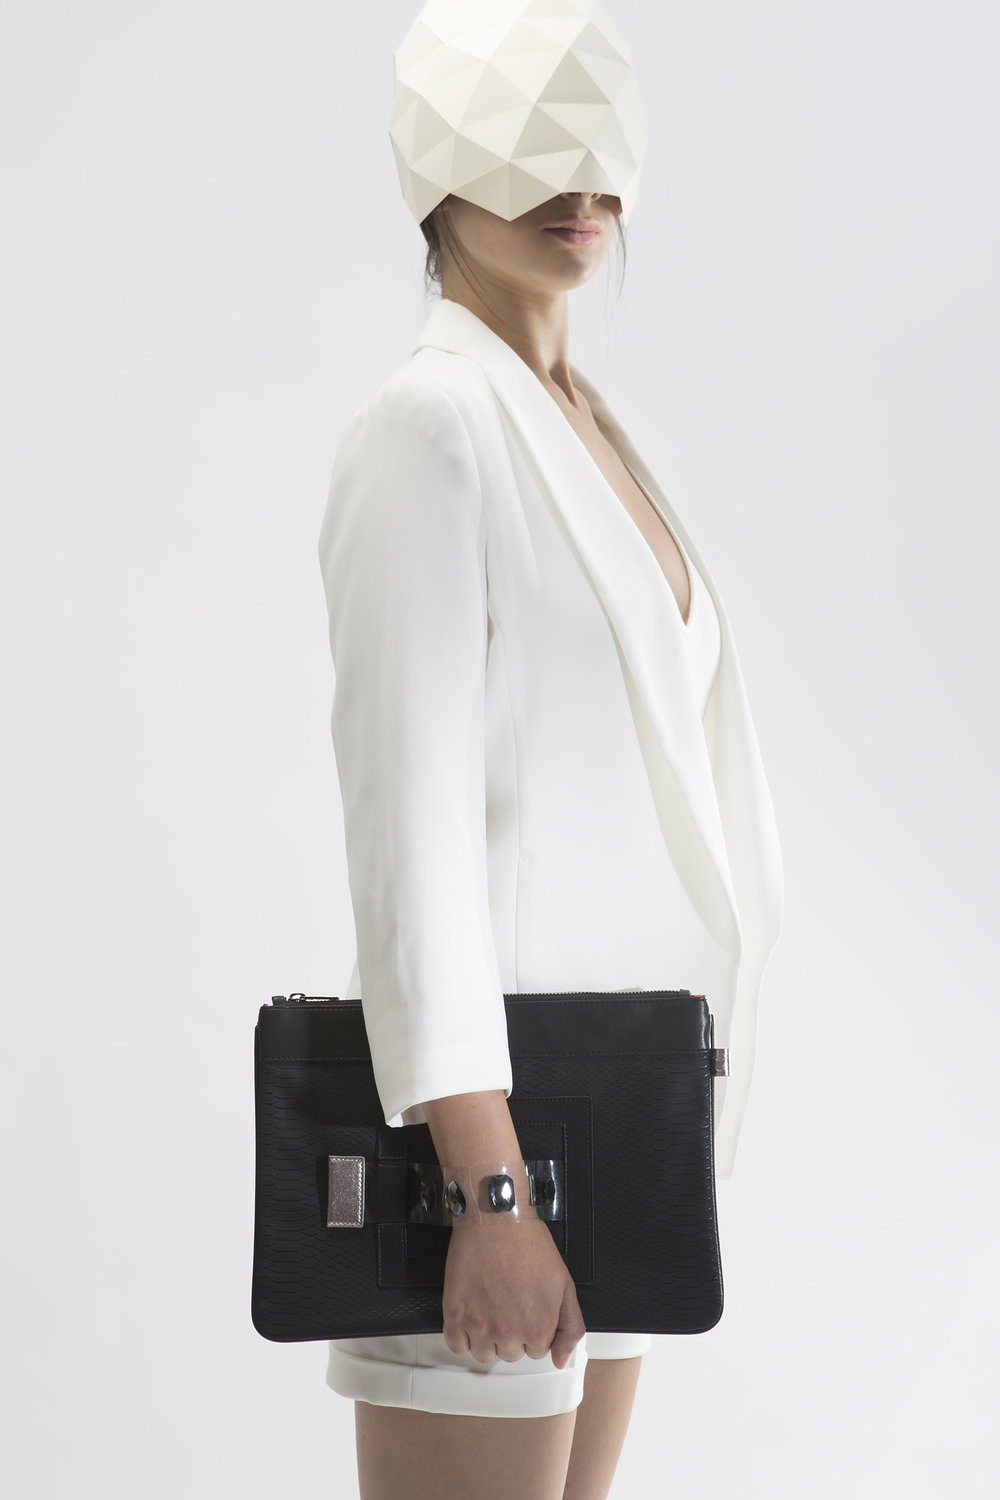 FruitenVeg-GEMA bag-eco-vegan-leather-luxury-tablet bag-bracelet-clutch-new-york-handbag-designer.jpg